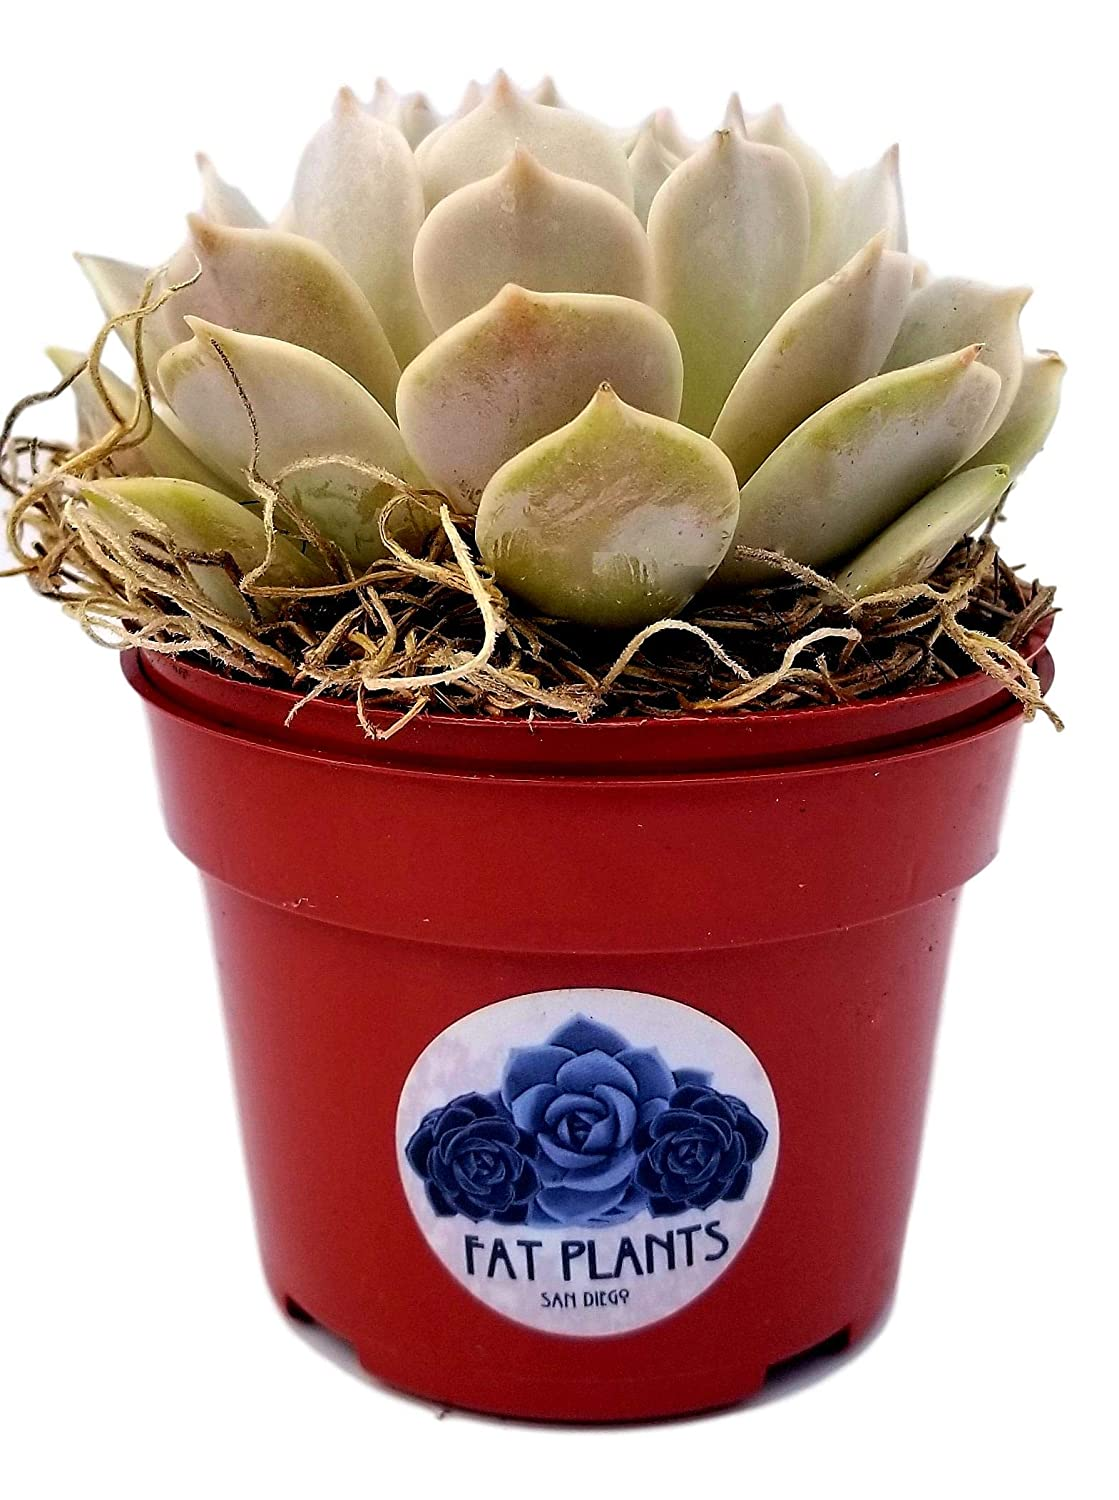 4 inch, Burgundy Pearl Fat Plants San Diego Live Echeveria Succulent Plant in a 4 inch Plastic Growers Pot